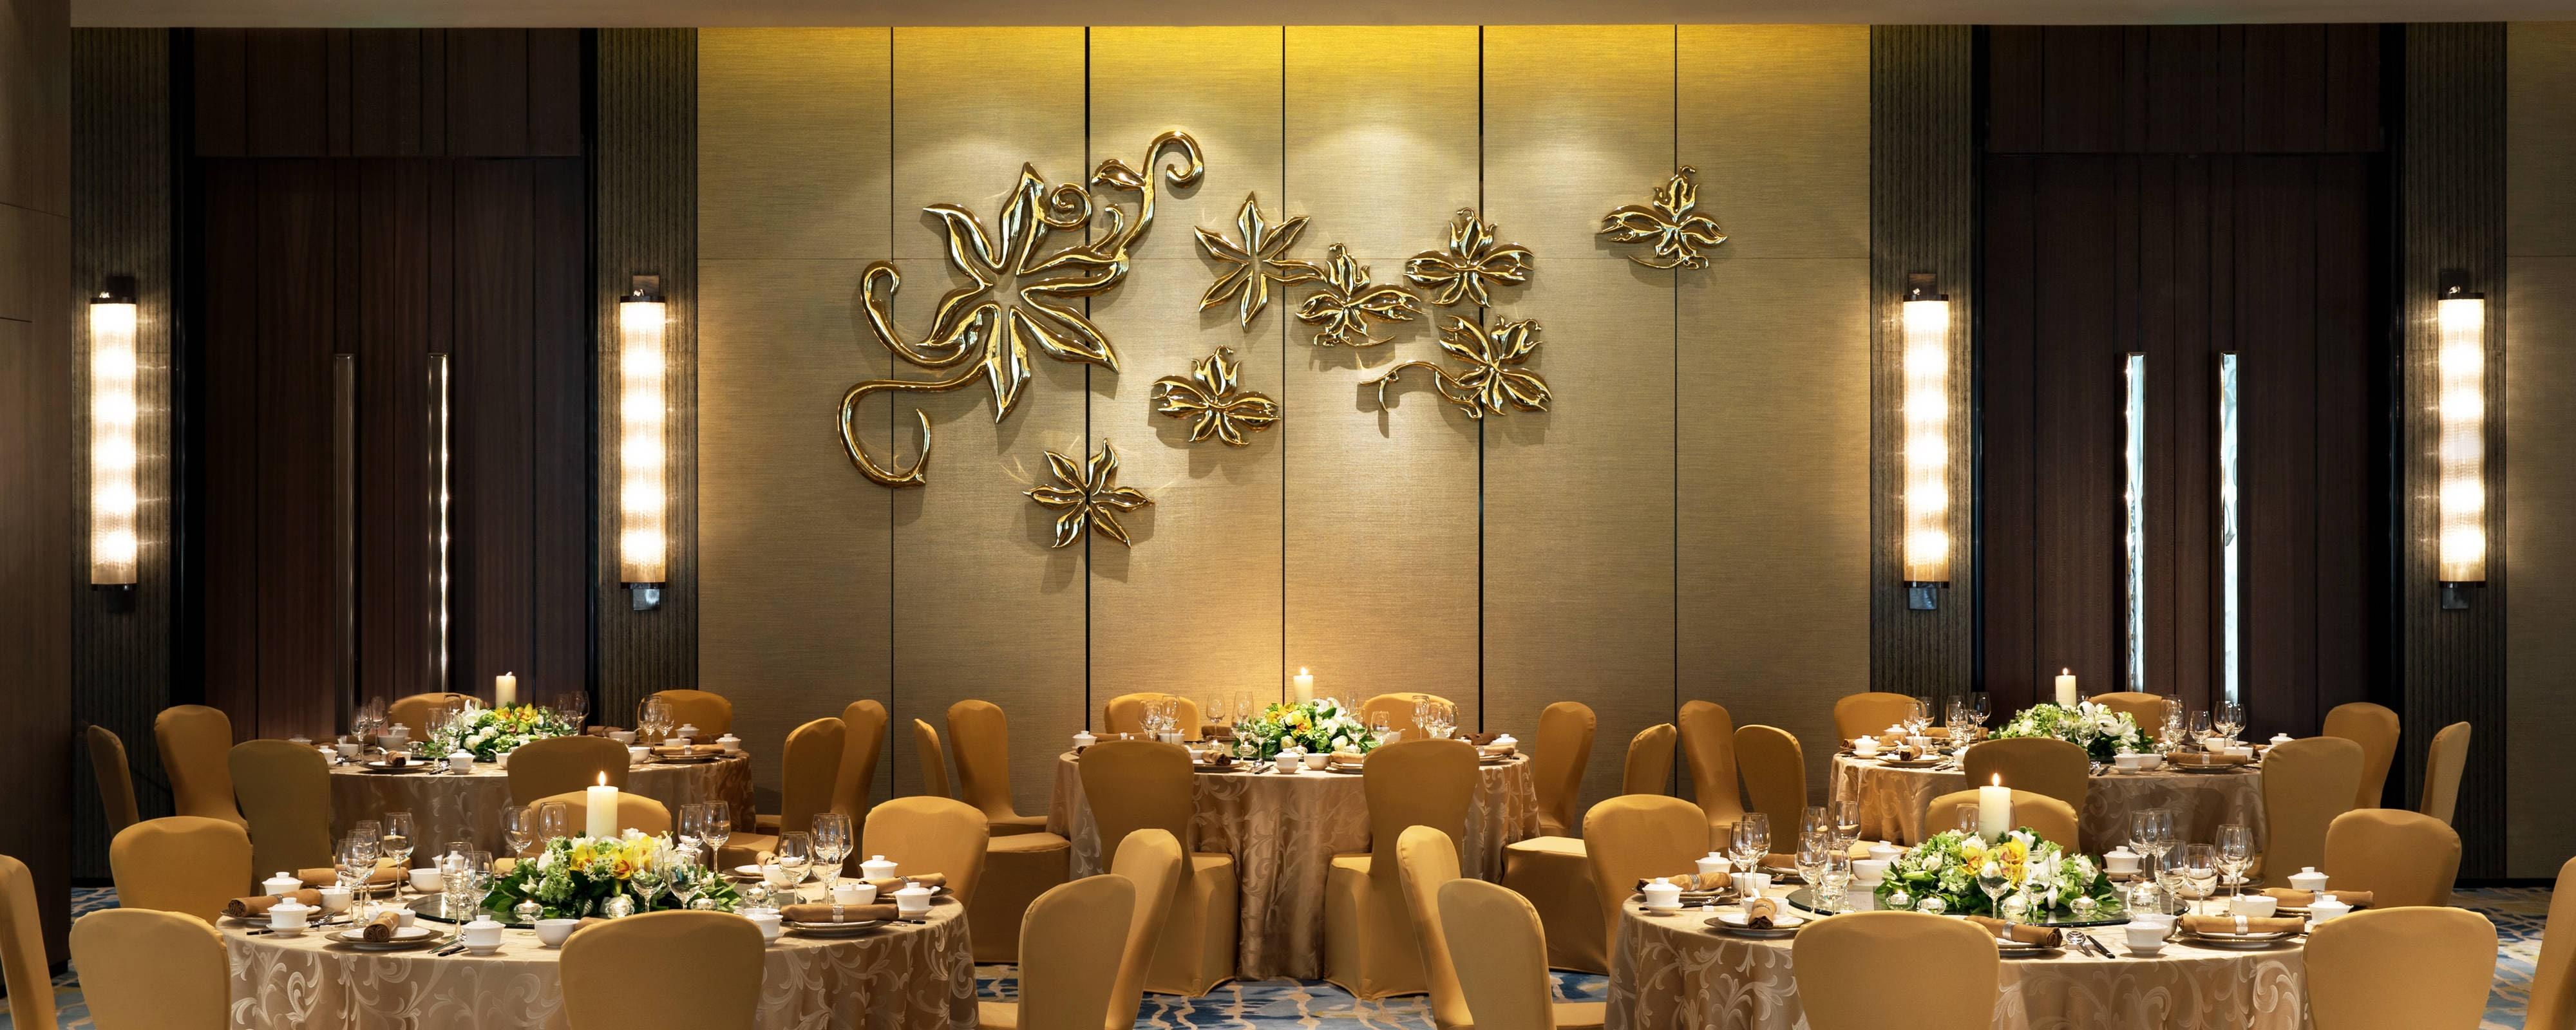 Salle de bal du Courtyard by Marriott Zhengzhou East